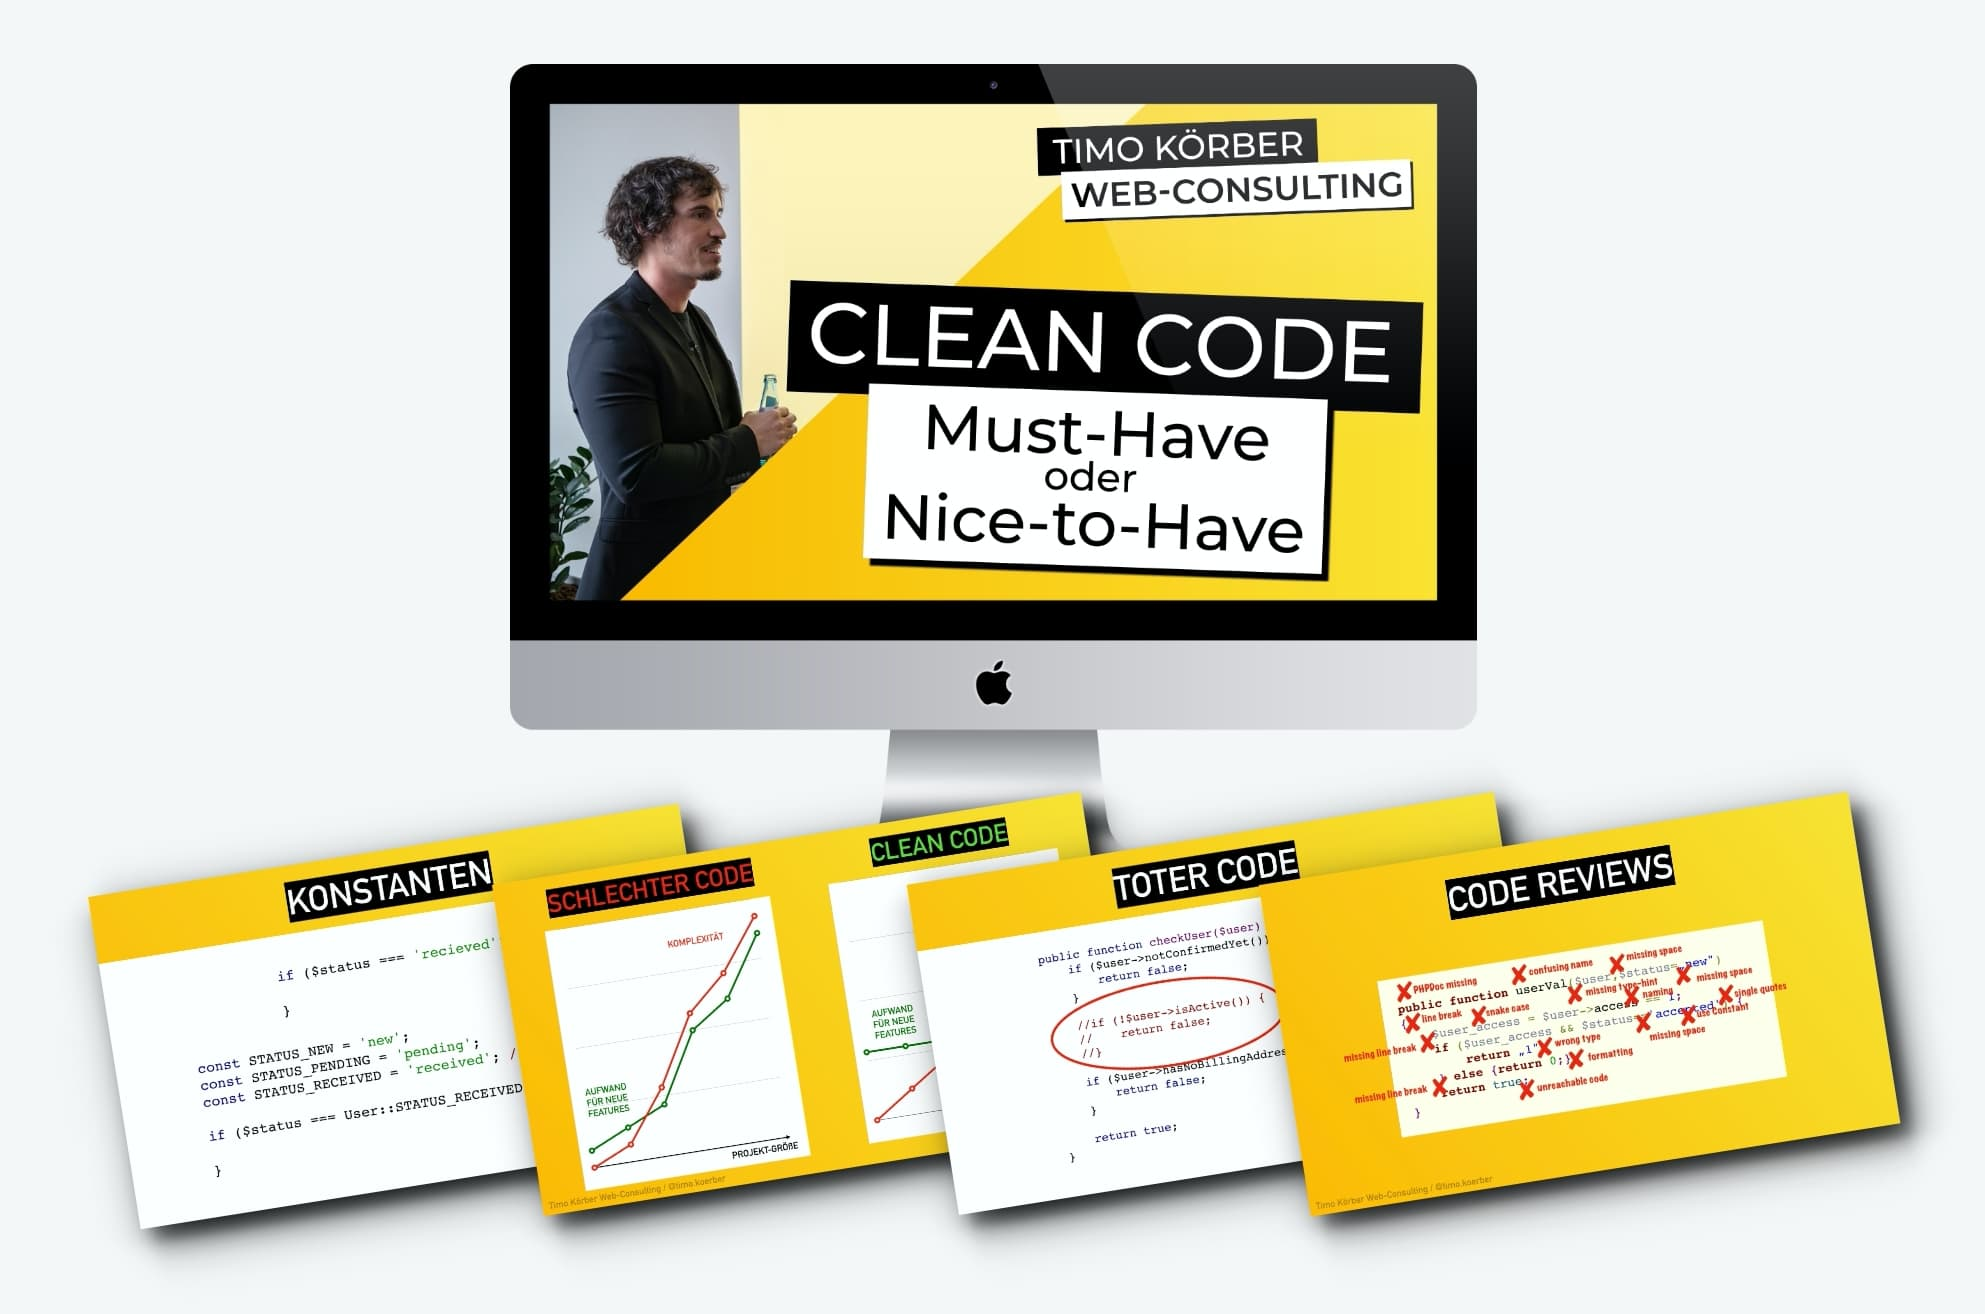 Clean Code - Must-Have oder Nice-to-Have